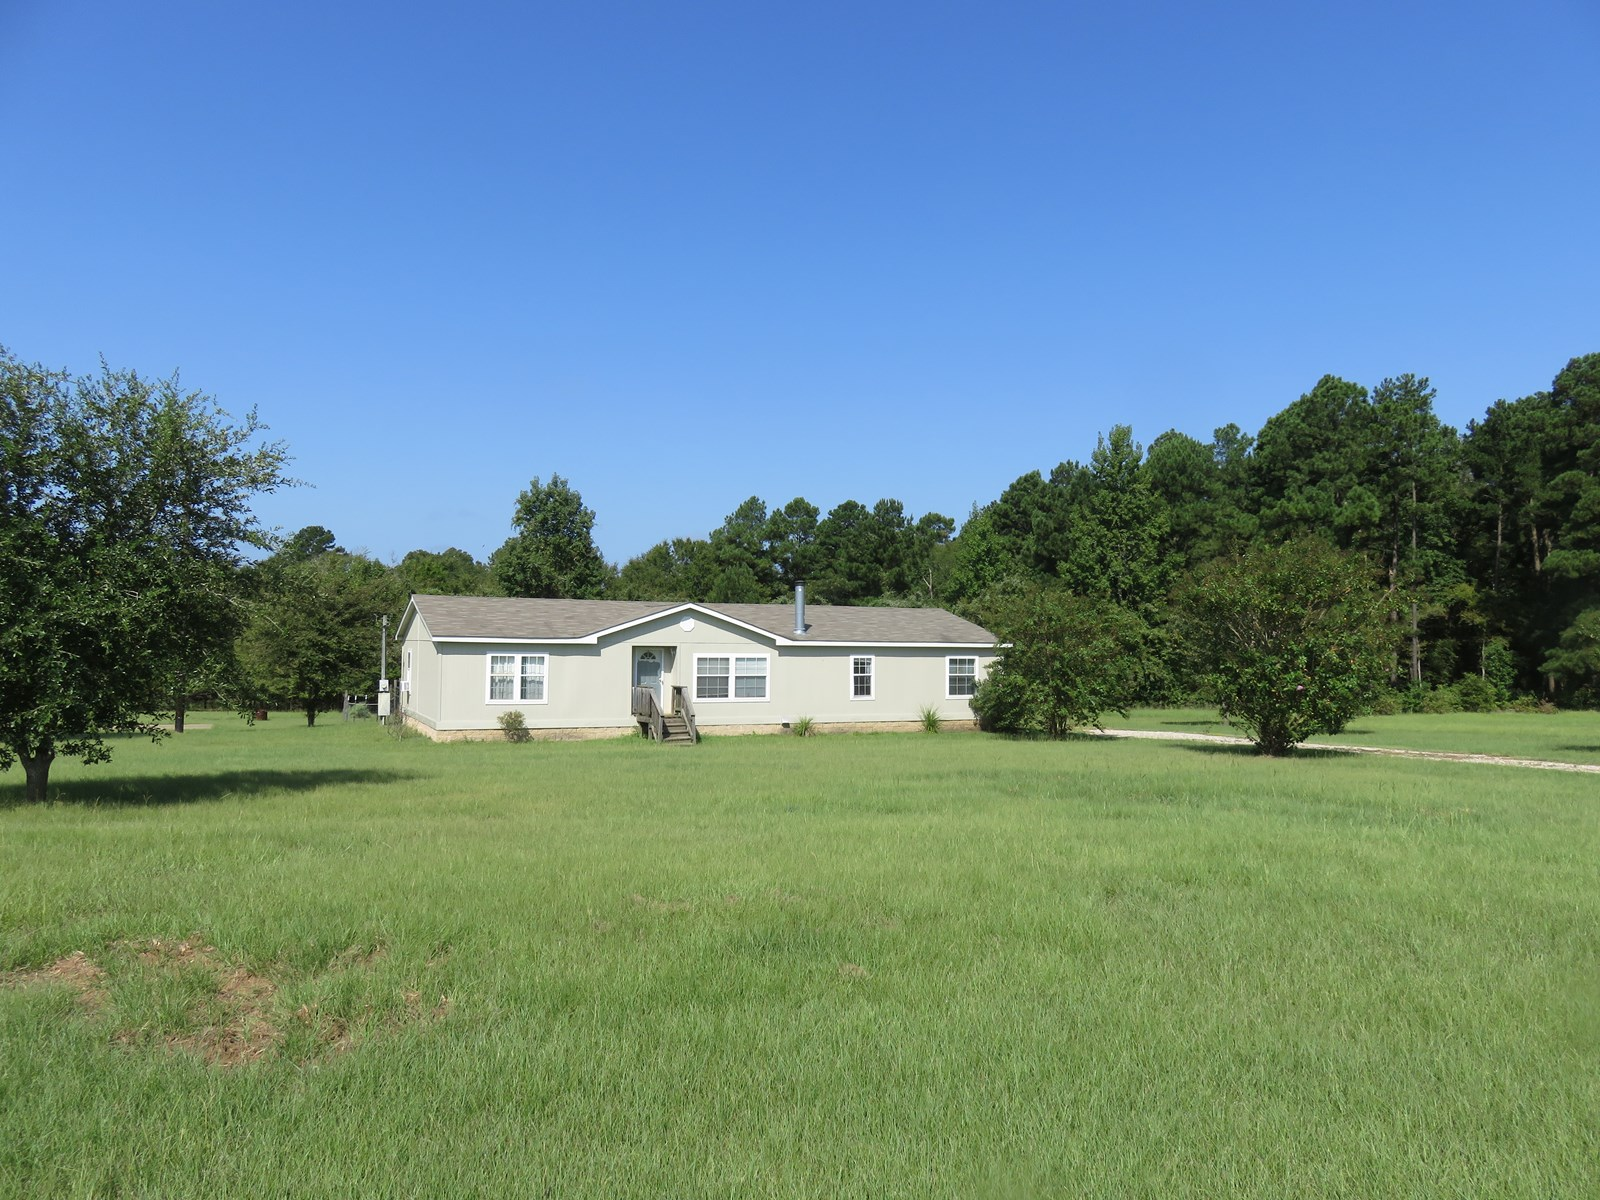 MOBILE HOME PLUS 2 ACRES FOR SALE IN ANDERSON COUNTY